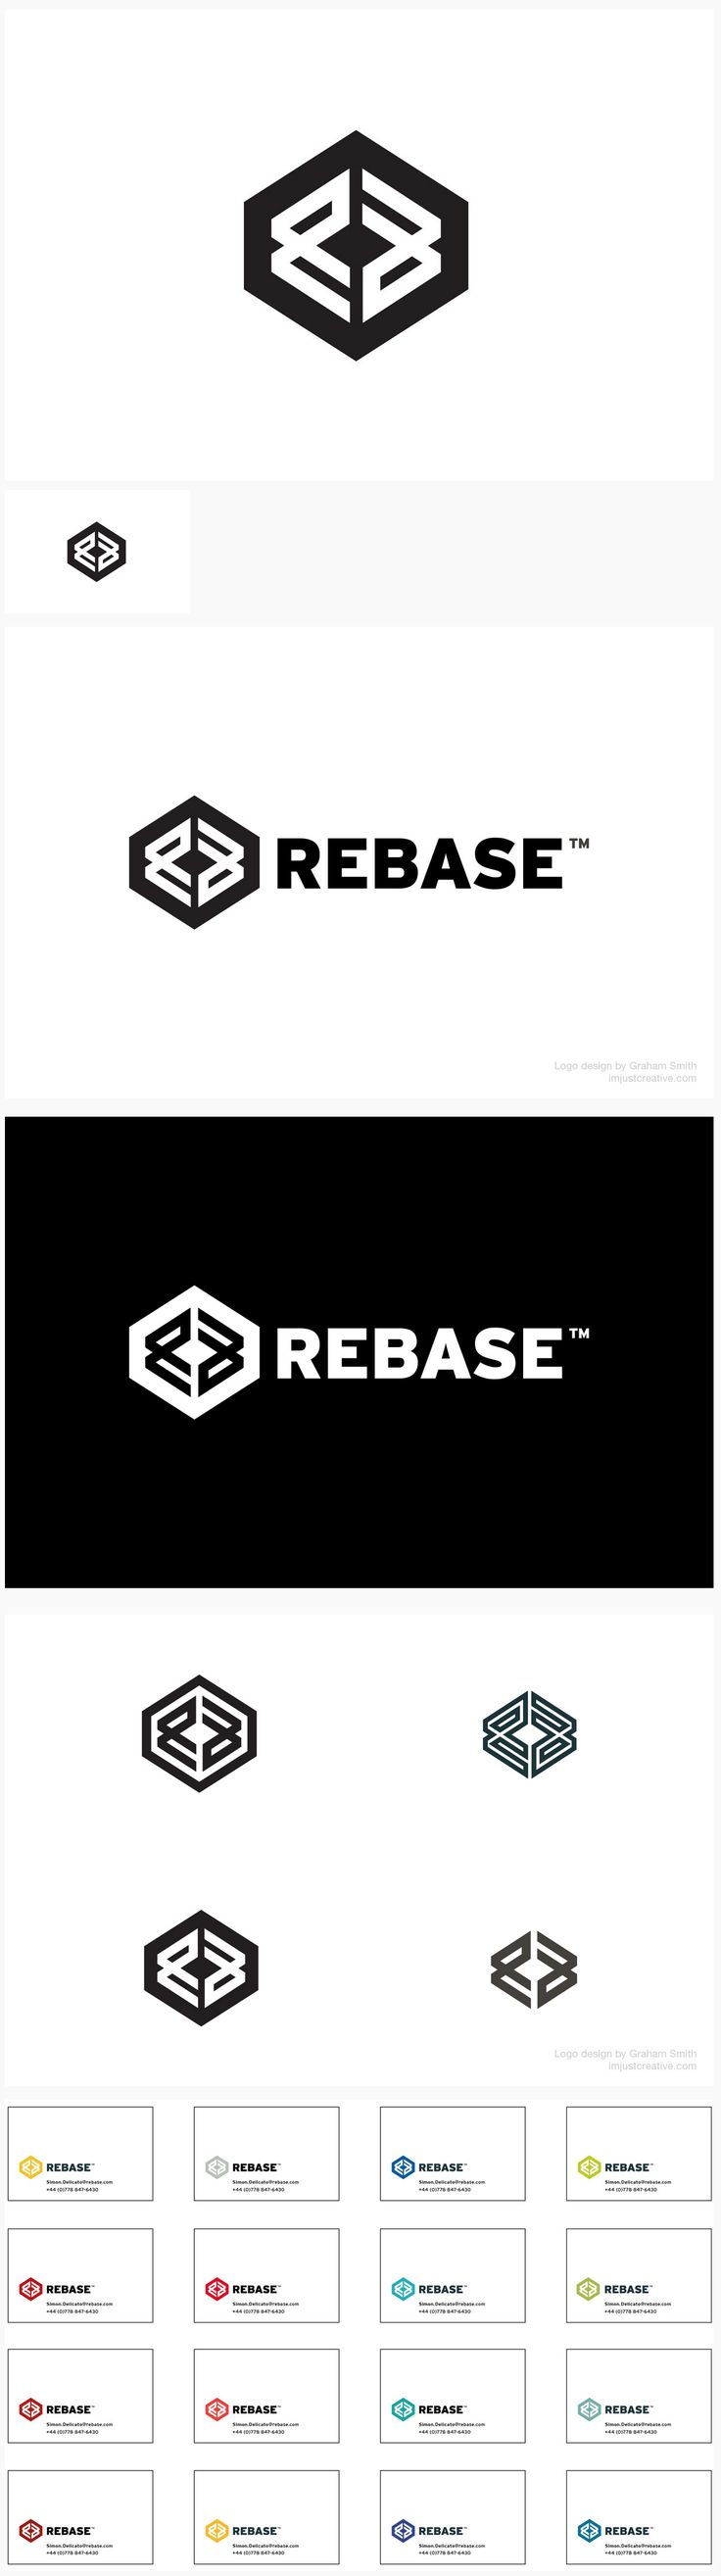 Clean Cool Modern Logo design // ReBase //  Logo design for database software developer, ReBase.  Many ideas were sketched and developed, but in the end it was the very last idea that was chosen. The logomark is formed from the initials R & B, even though the brand name is presented as one word, the client will be capitalising 'Base'.  http://imjustcreative.com/portfolio/rebase